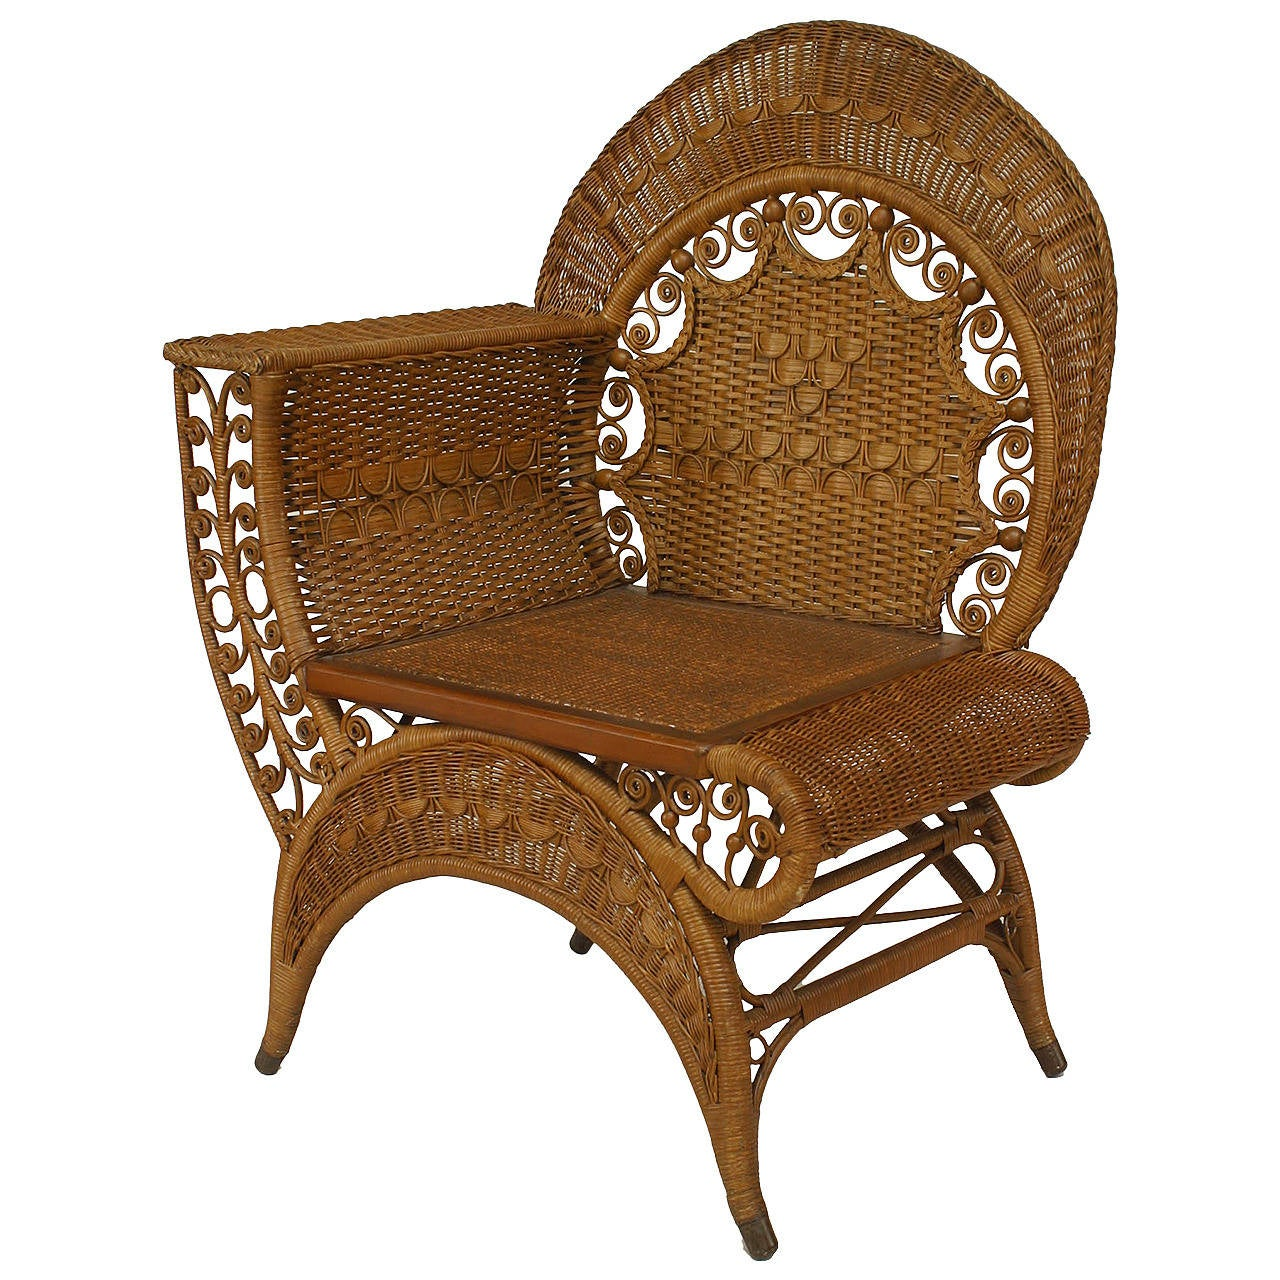 19th century american wicker photographer 39 s chair by for American rattan furniture manufacturer